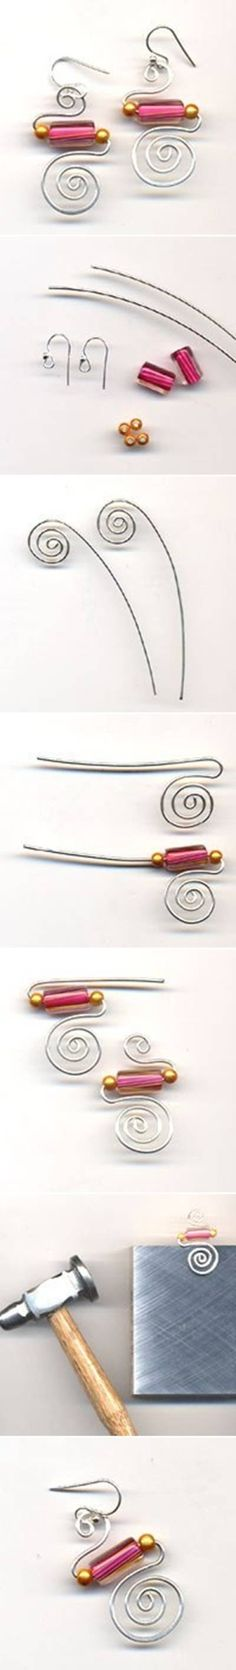 DIY Simple Stylish Wire Earrings DIY Simple Stylish Wire Earrings by diyforever